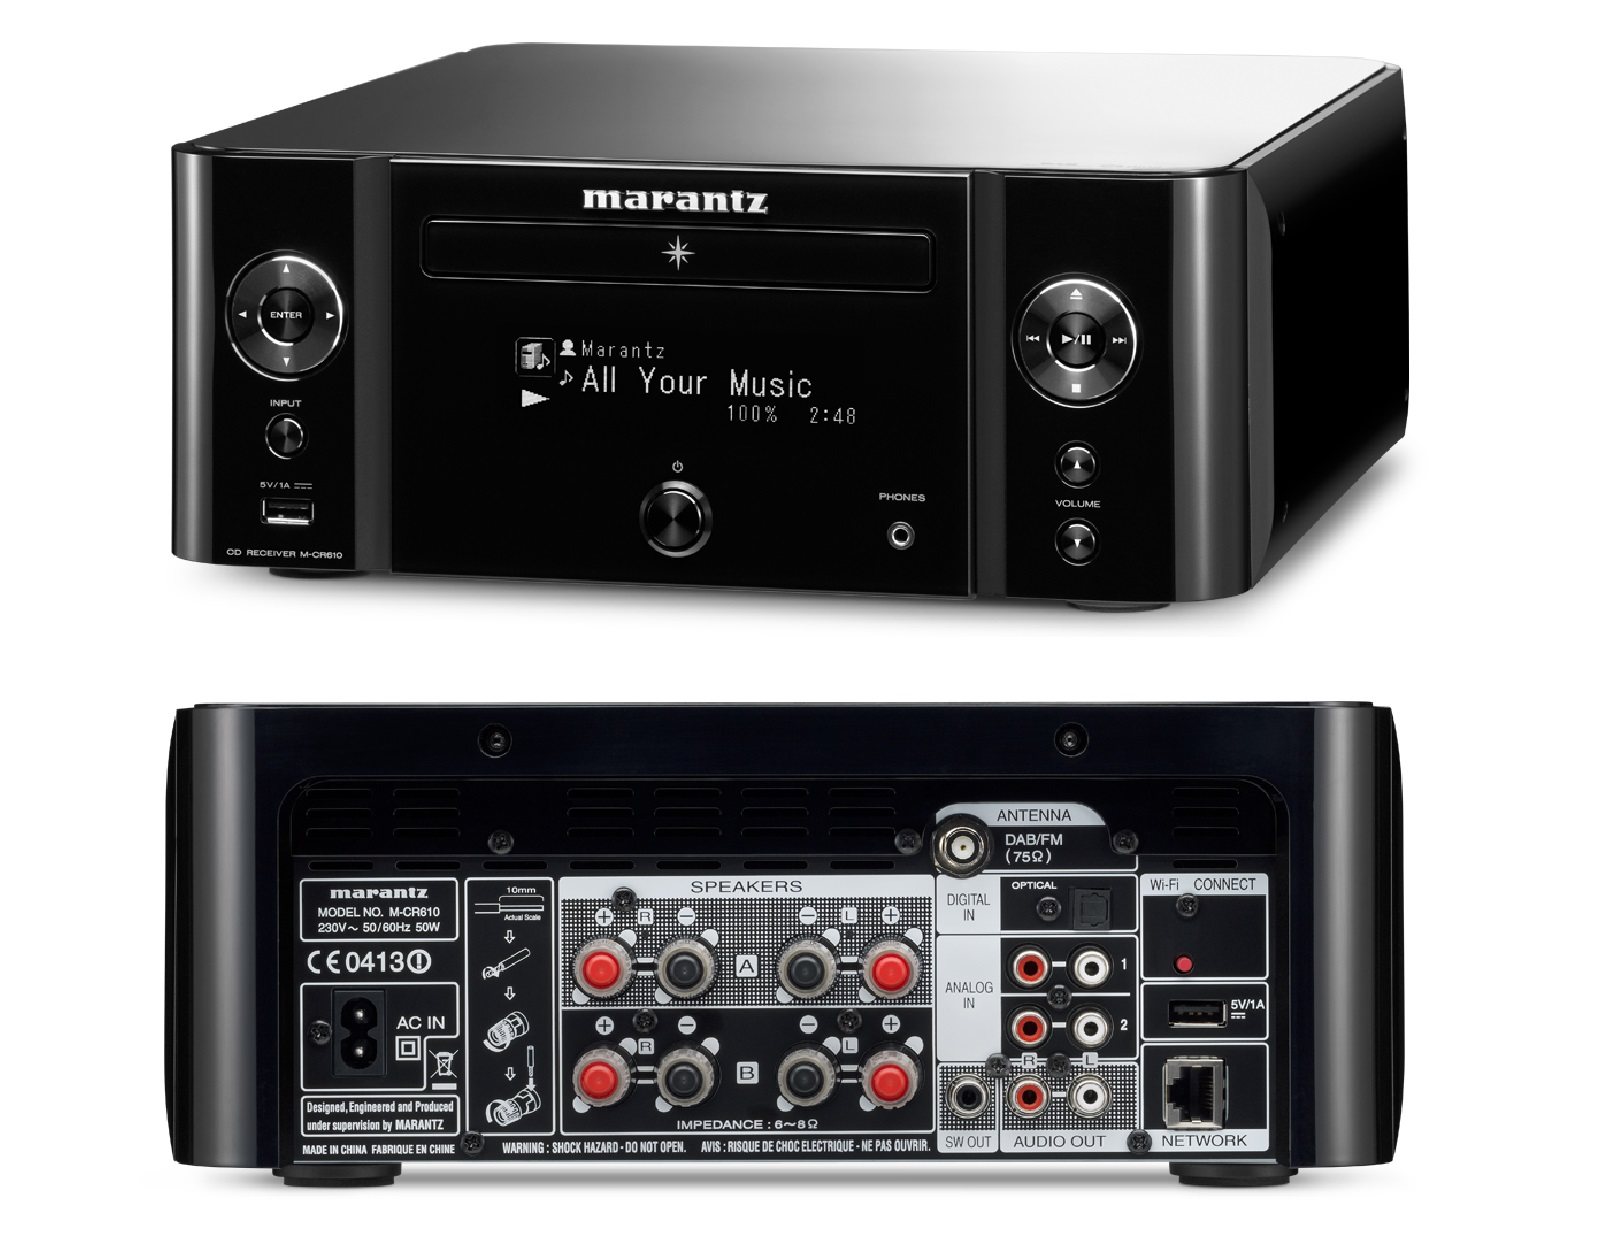 marantz model 250 m service manual